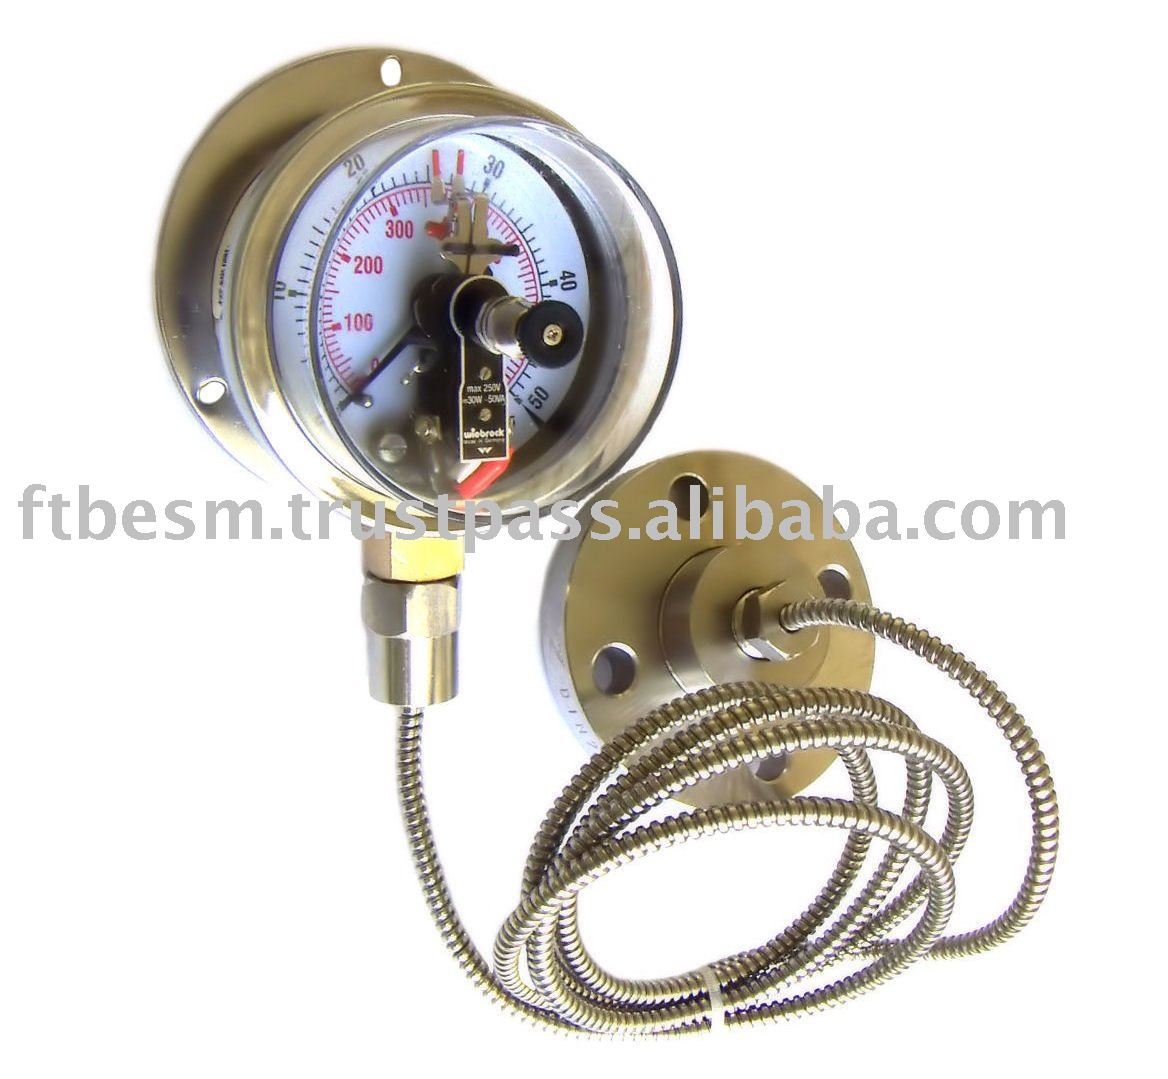 Electrical Contact Pressure Gauges With Diaphragm Seal With ...